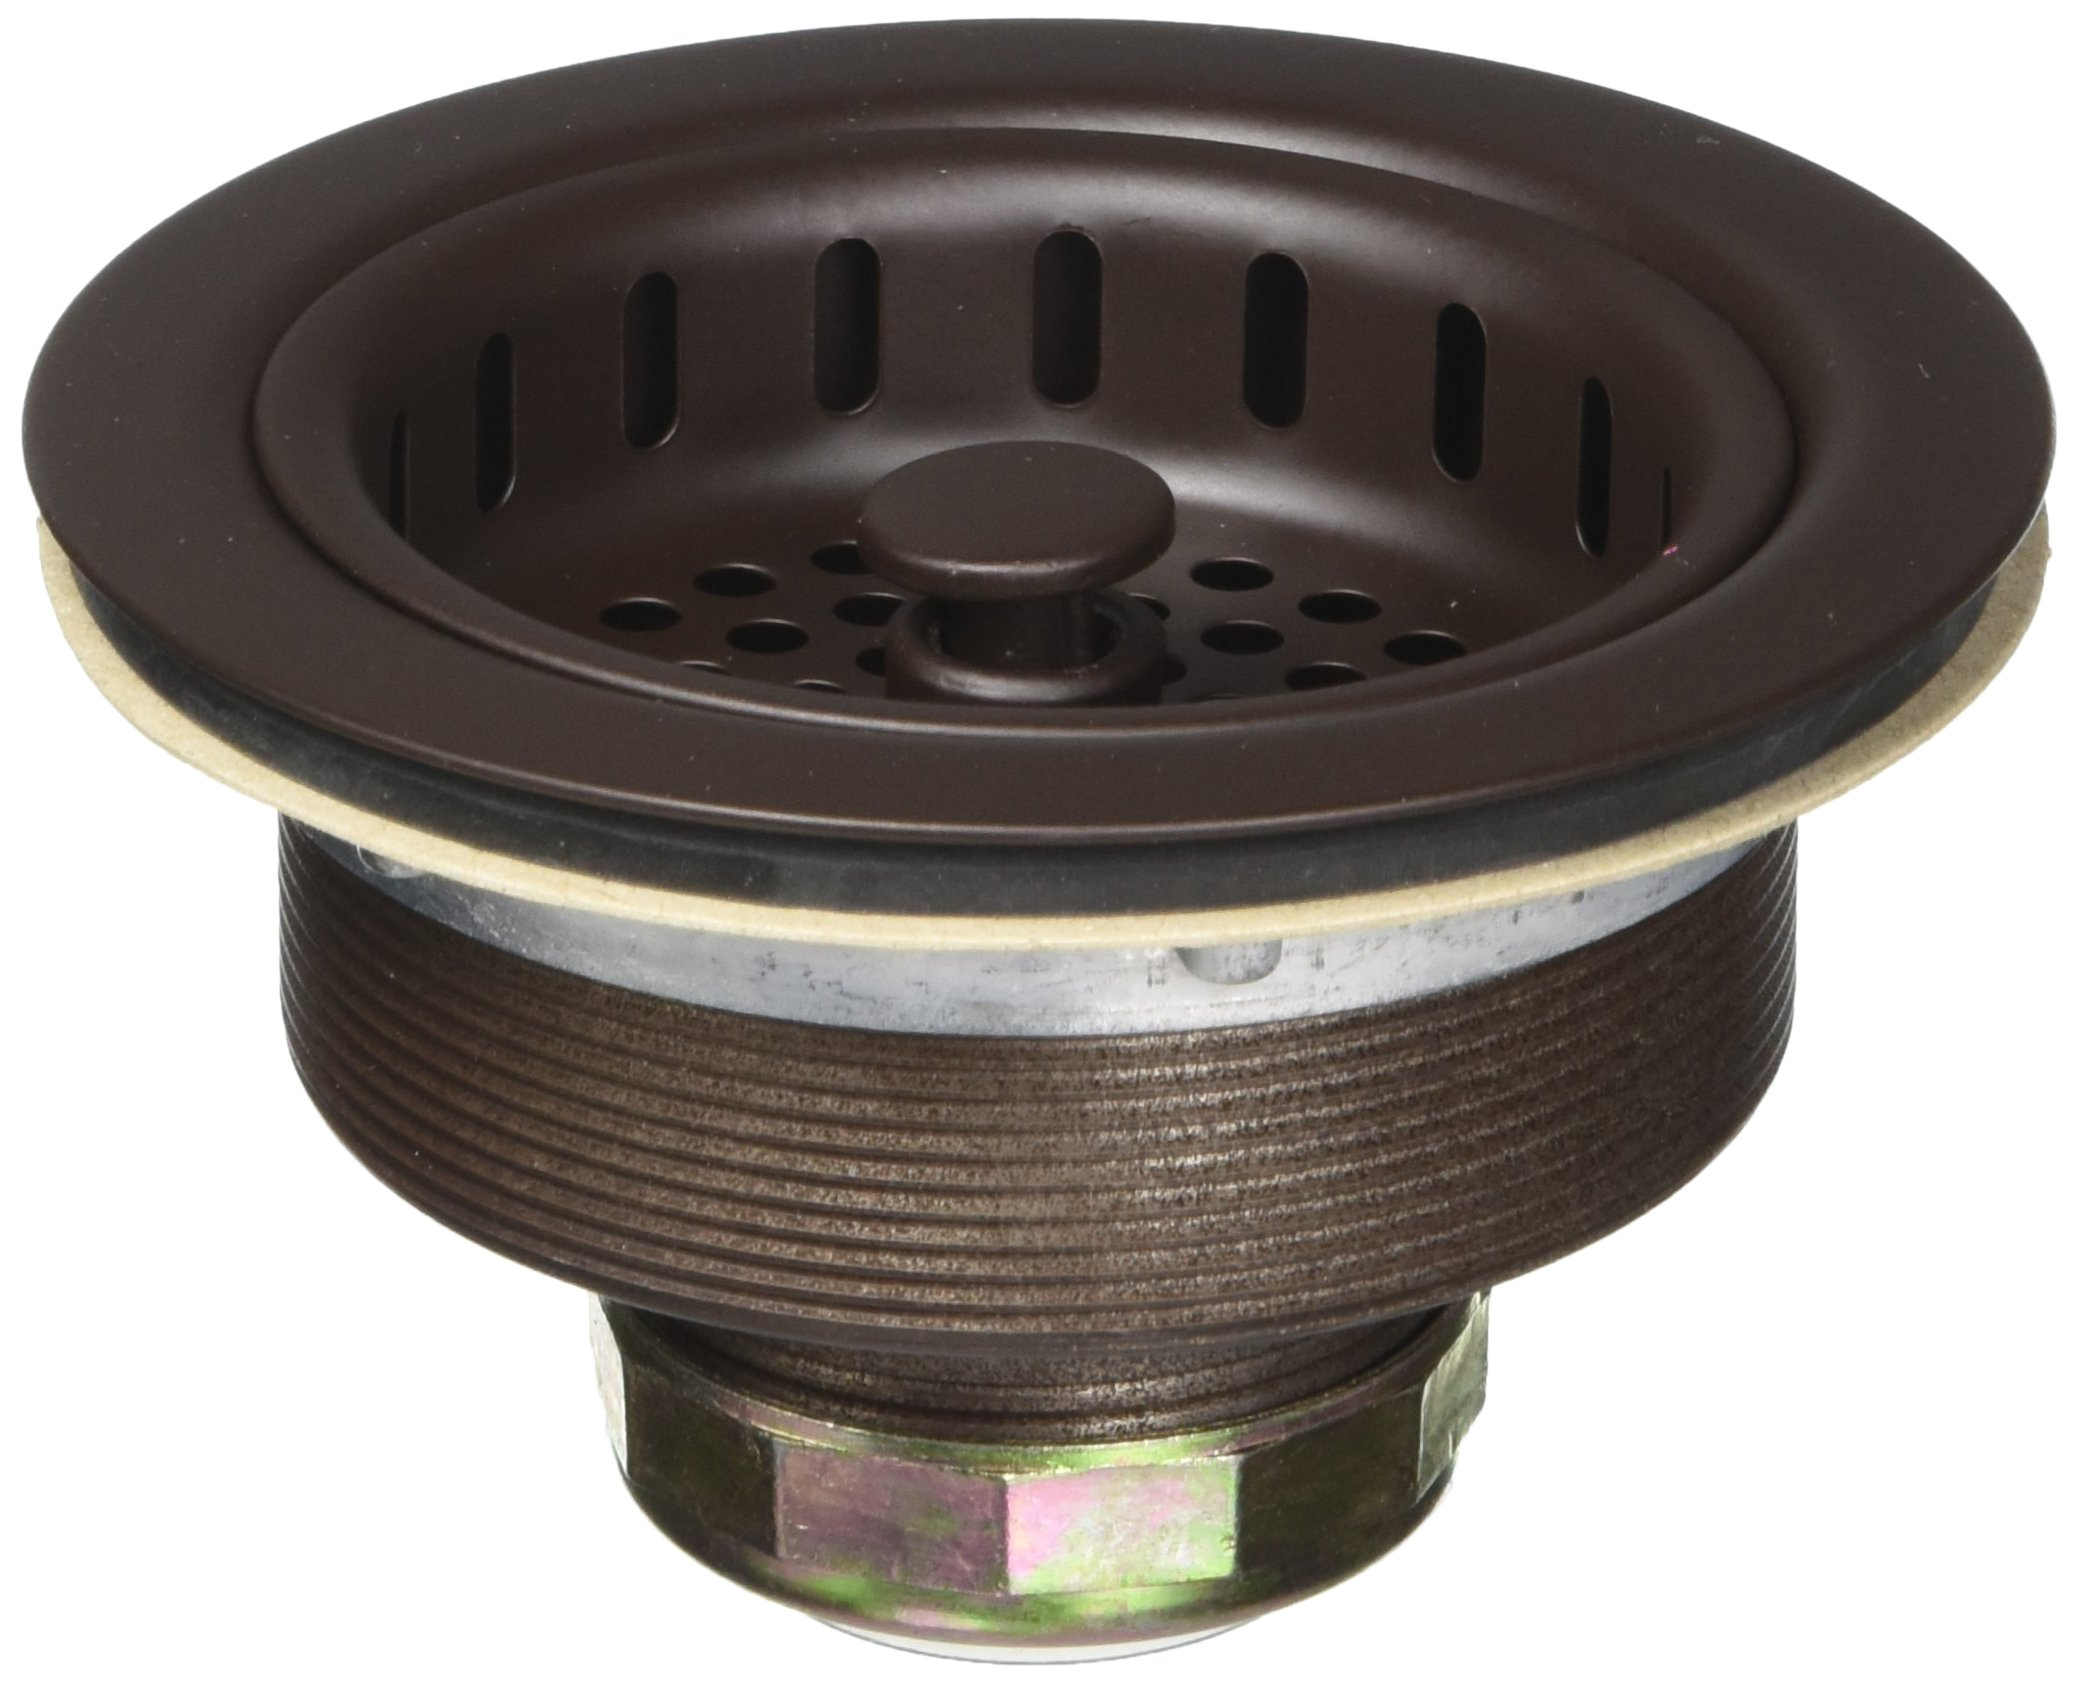 BrassCraft BC7150 BZ 3-1/2'' Post Style Basket Strainer with Nut and Washer in Oil Rubbed Bronze